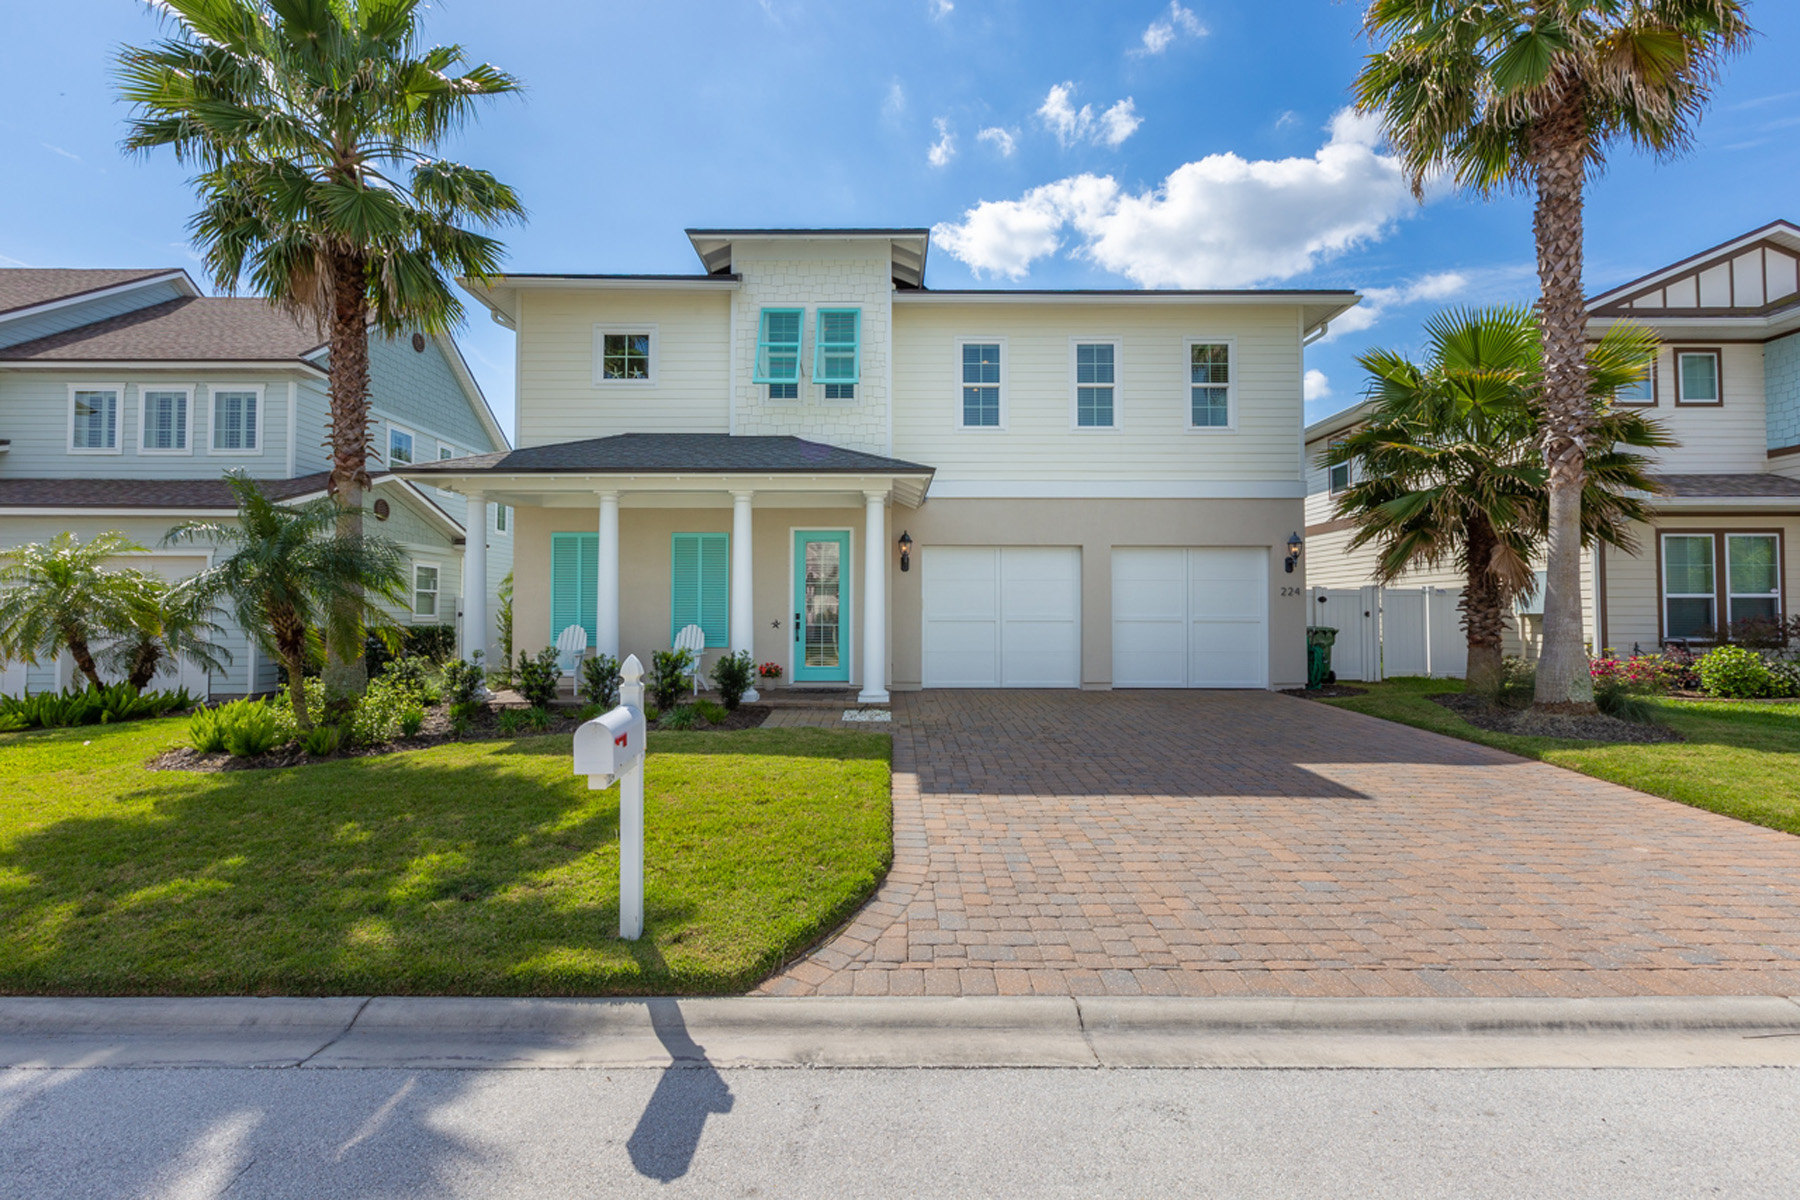 Single Family Homes for Sale at St Johns Floor Plan 224 39th Avenue South Jacksonville Beach, Florida 32250 United States